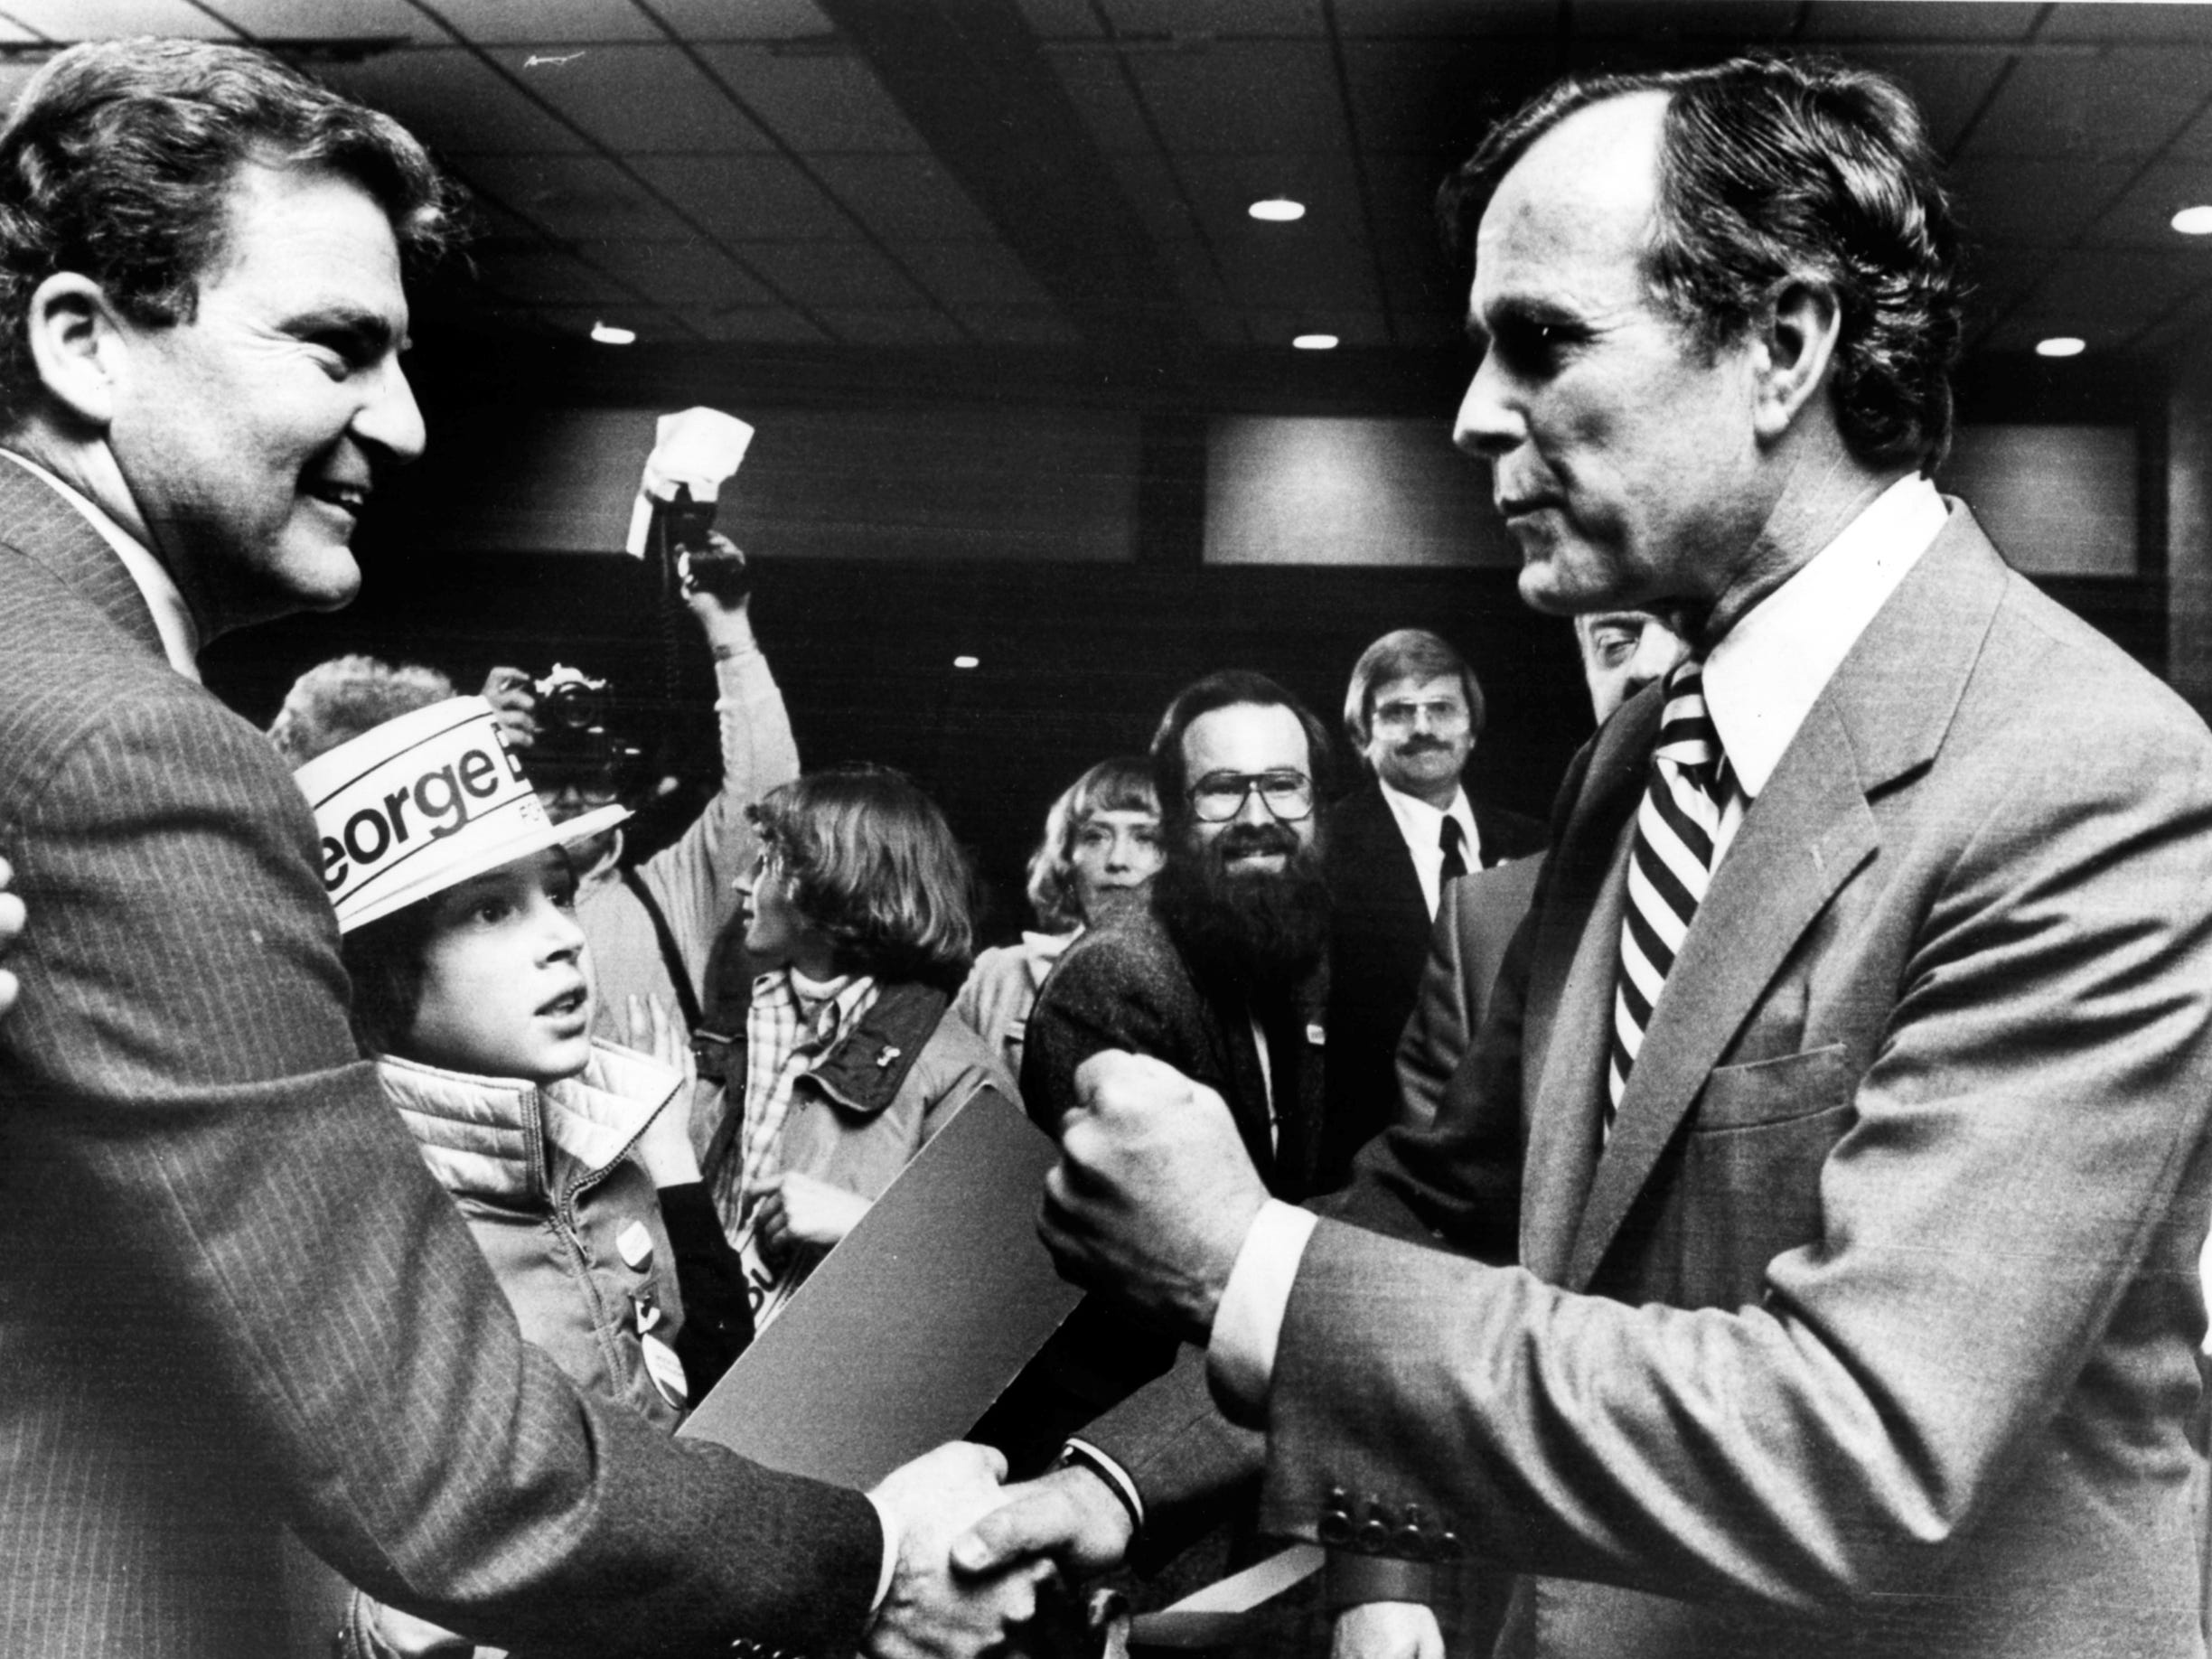 Republican presidential candidate George H. W. Bush visits Appleton on March 27, 1980. Post-Crescent photo.